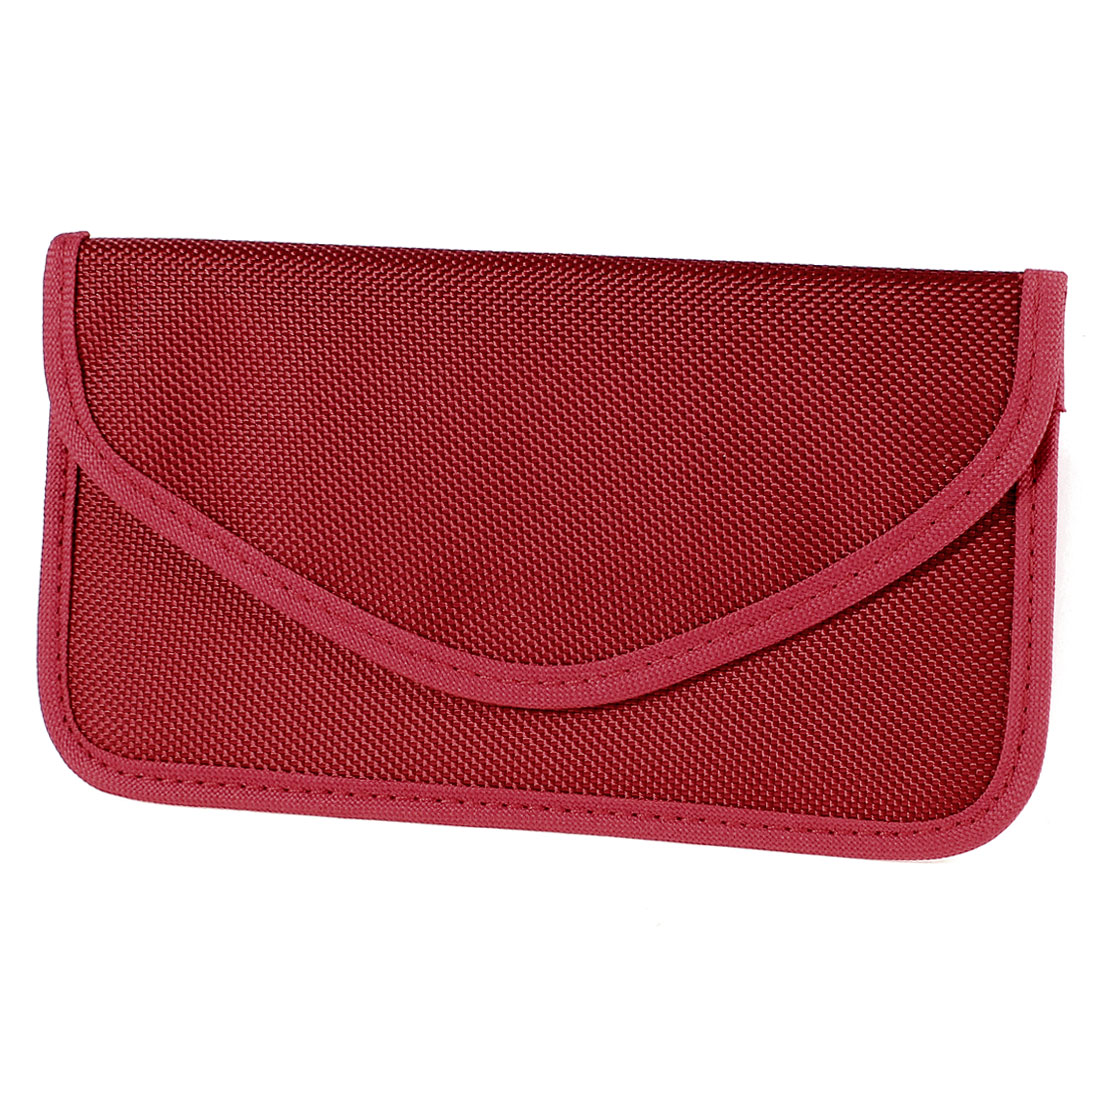 Red Cell Phone Anti-Tracking GPS RFID Signal Blocker Jammer Pouch Case Bag